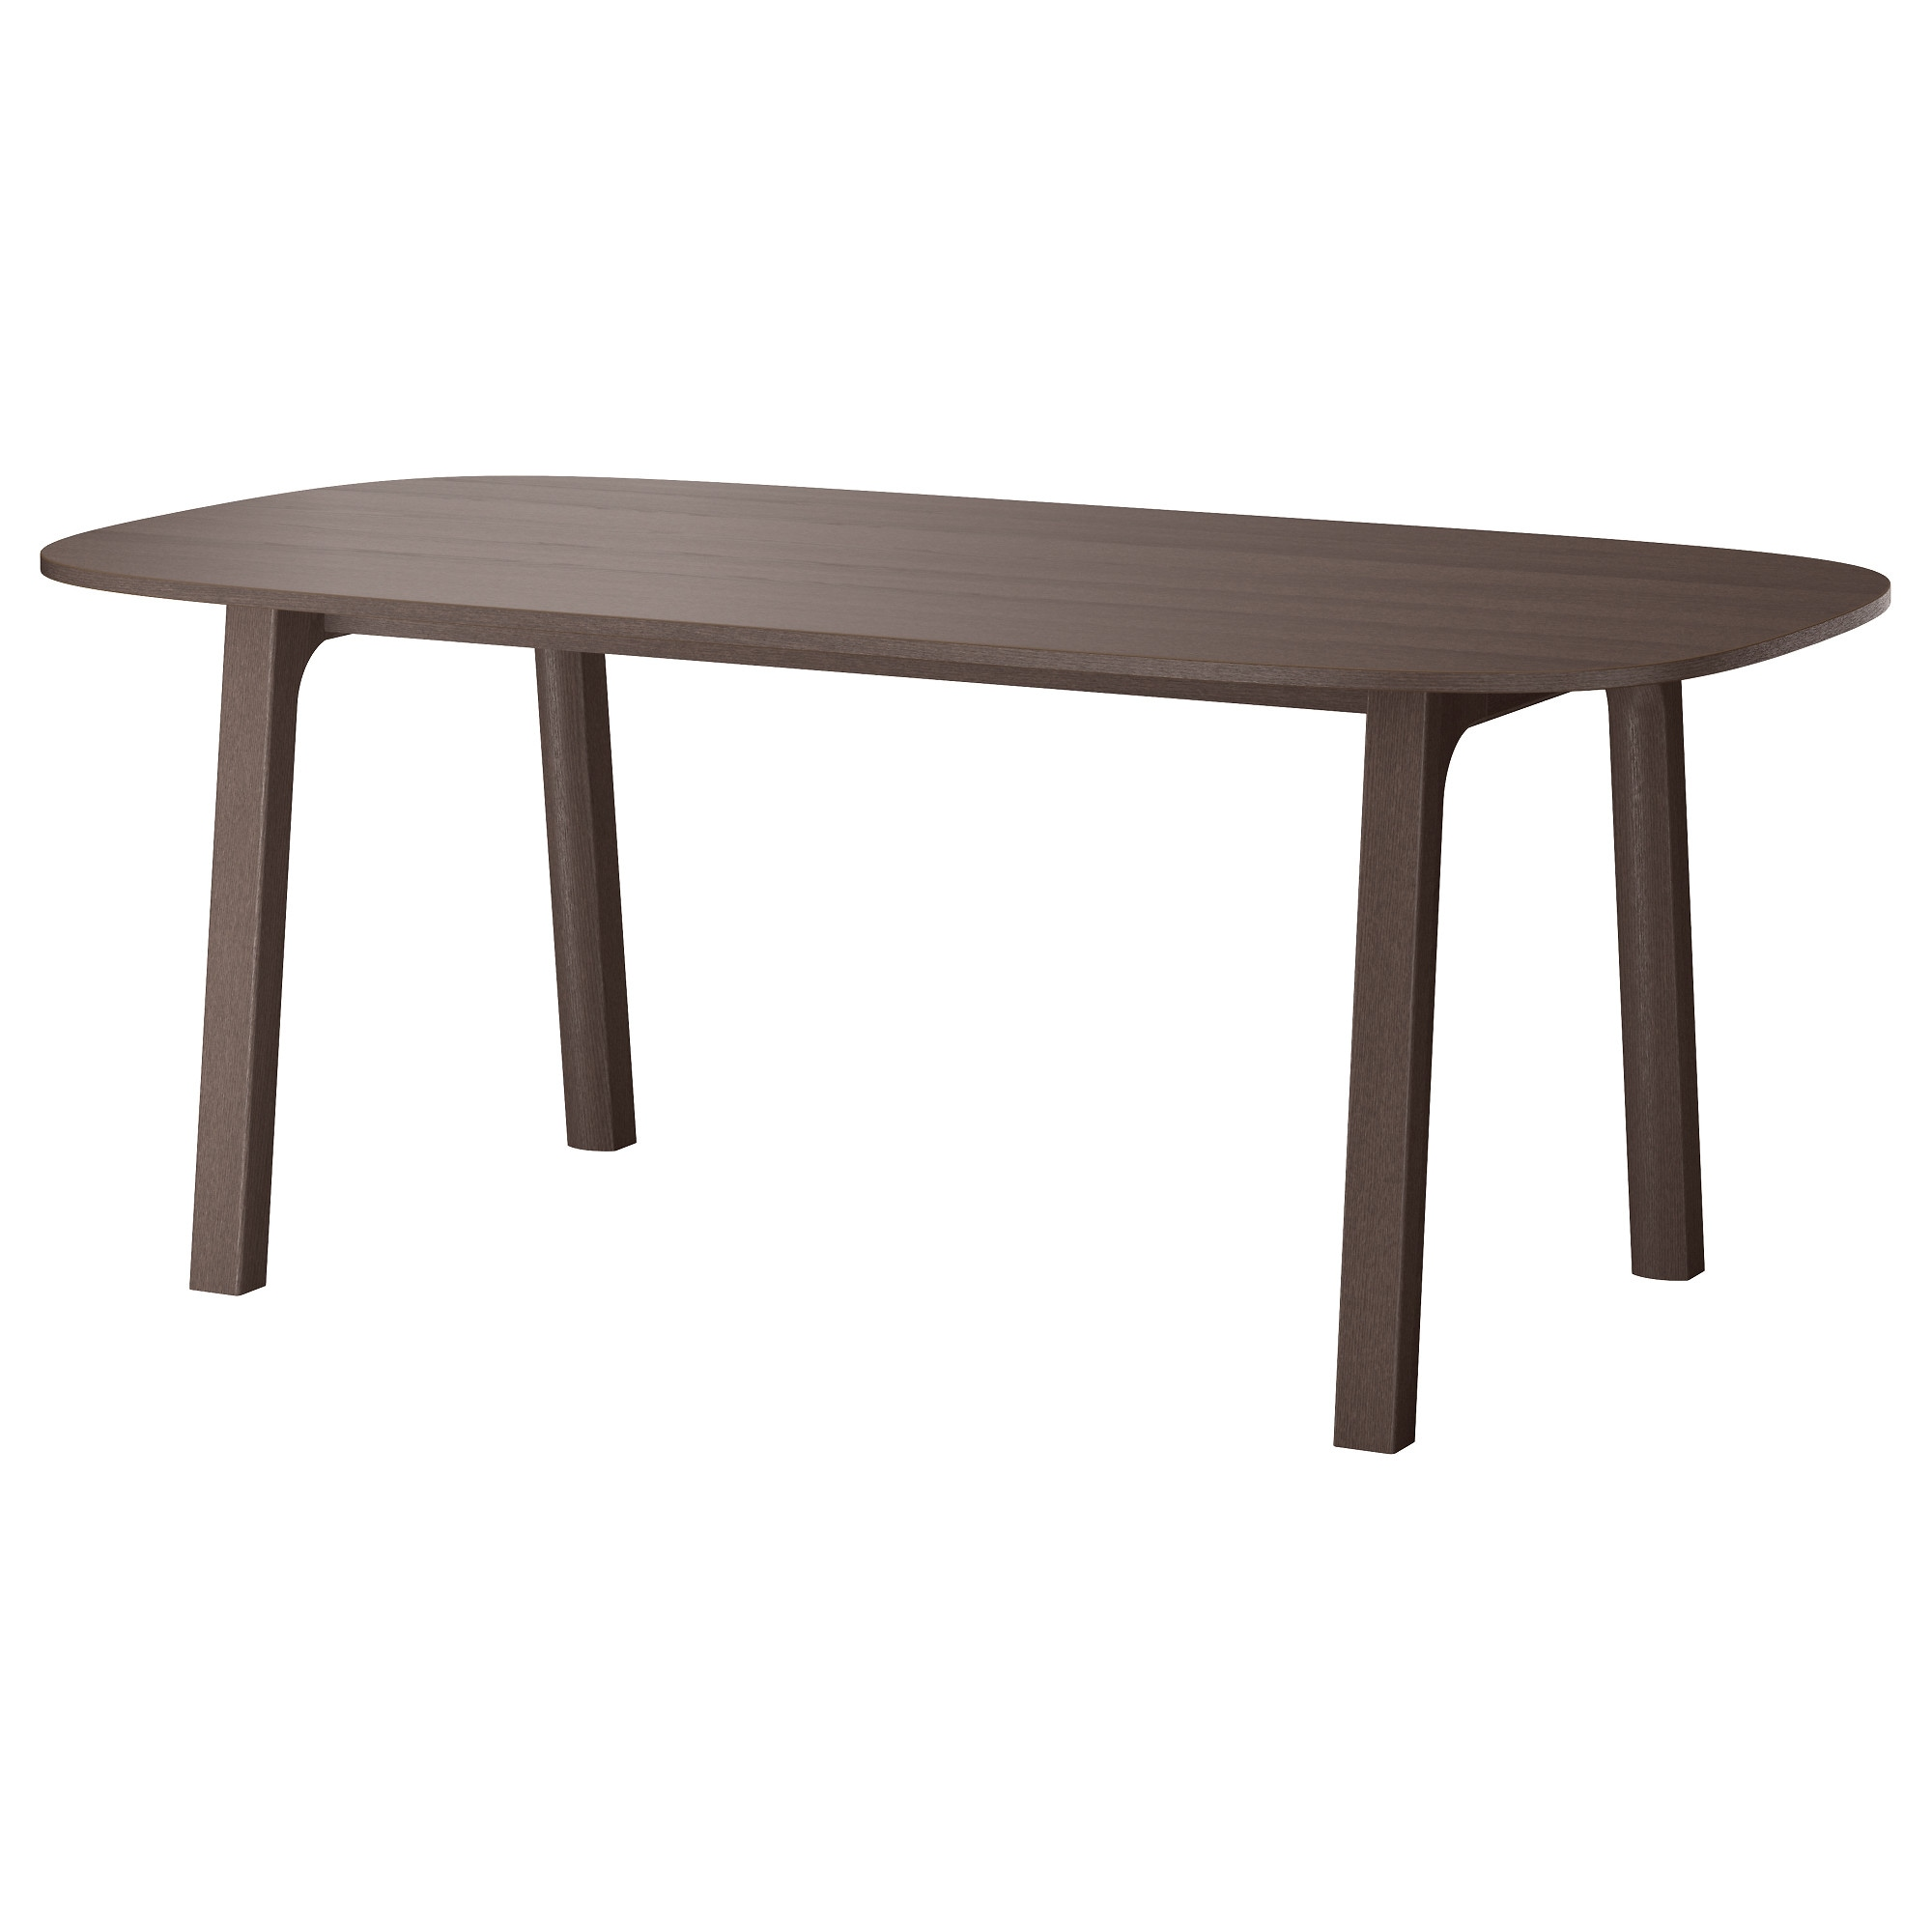 Table laqu blanc ikea fabulous bjursta nisse table et chaise plaqu chne blan - Table et chaise de cuisine ikea ...